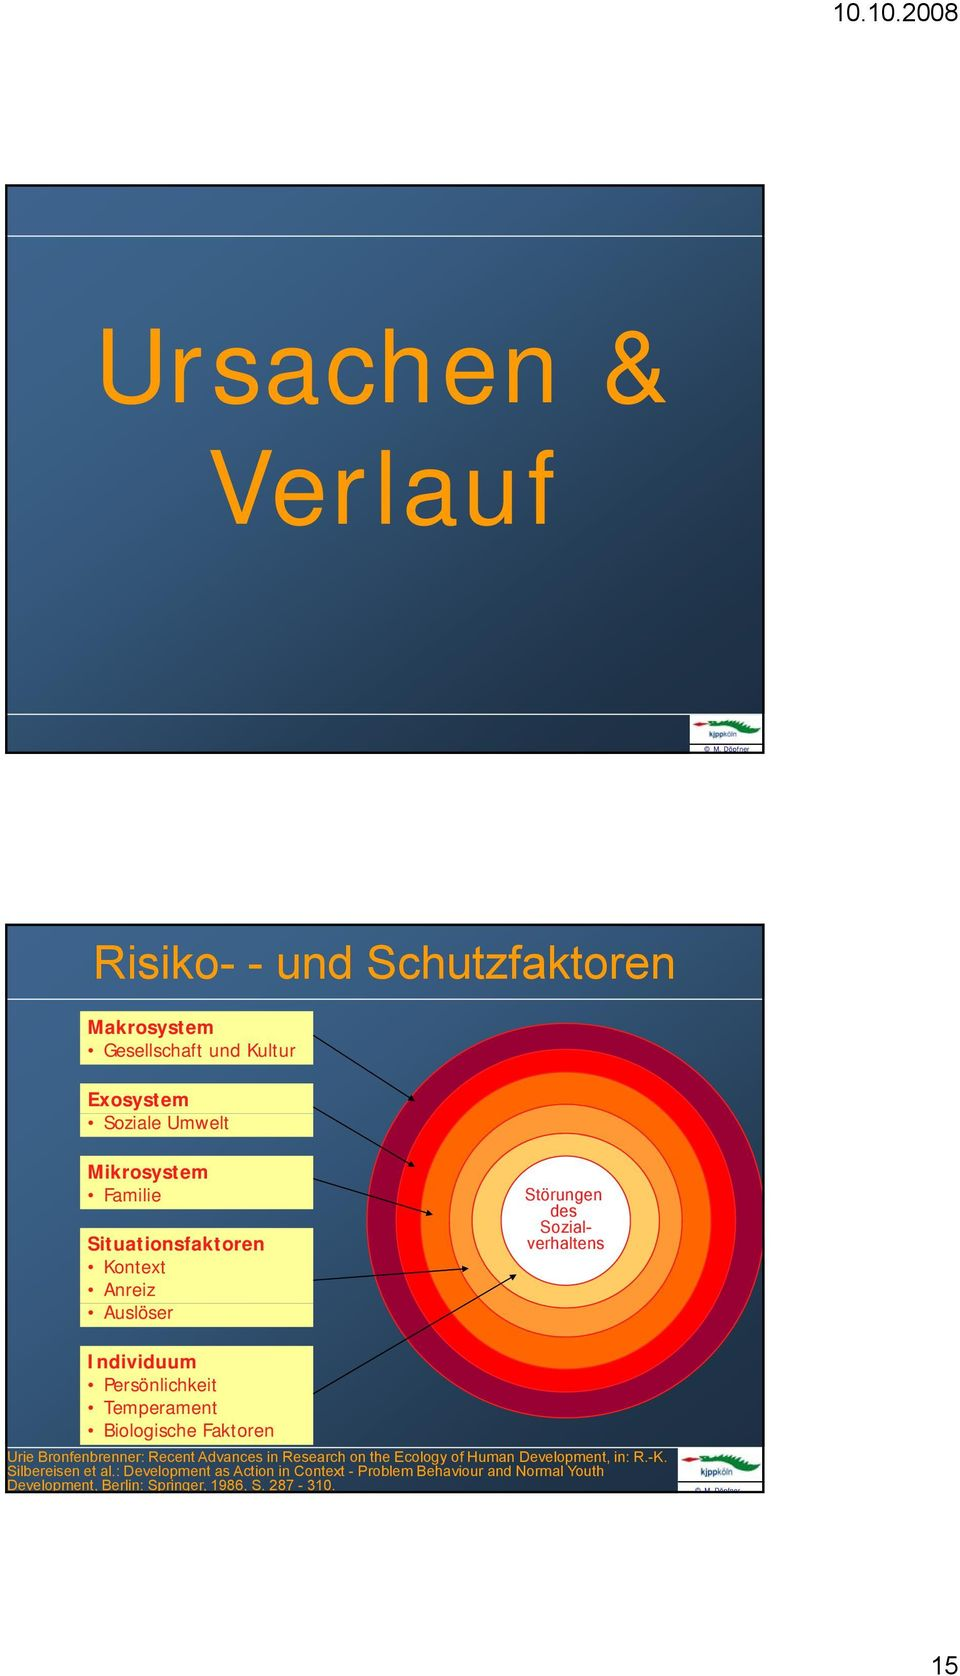 Biologische Faktoren Urie Bronfenbrenner: Recent Advances in Research on the Ecology of Human Development, in: R.-K.